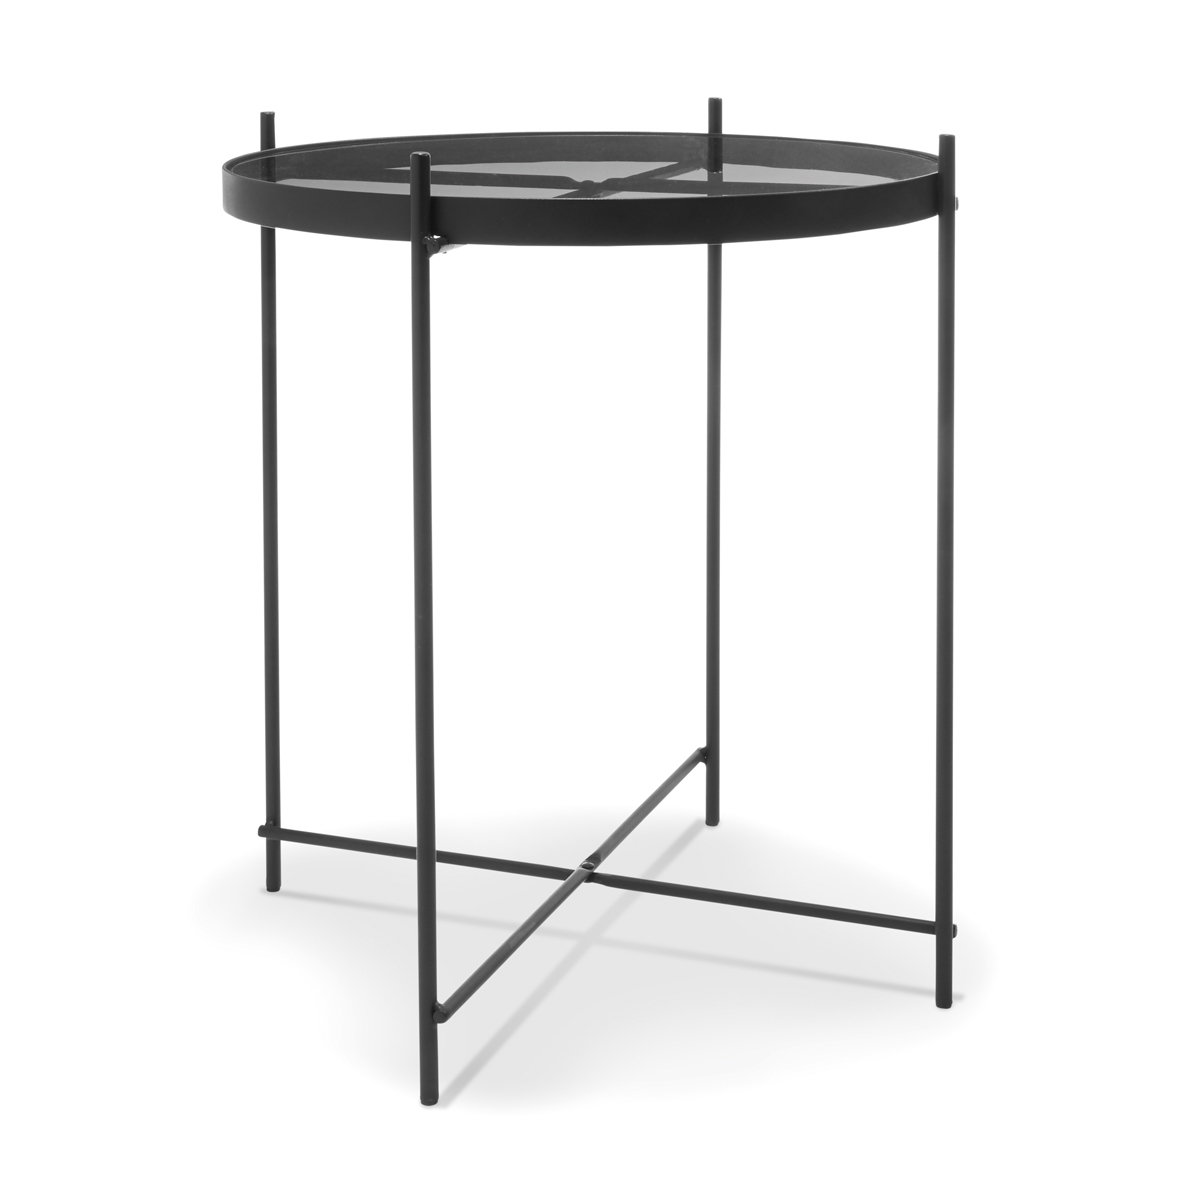 Tables coffee tables dining tables hallway tables kmart glass round side table geotapseo Image collections